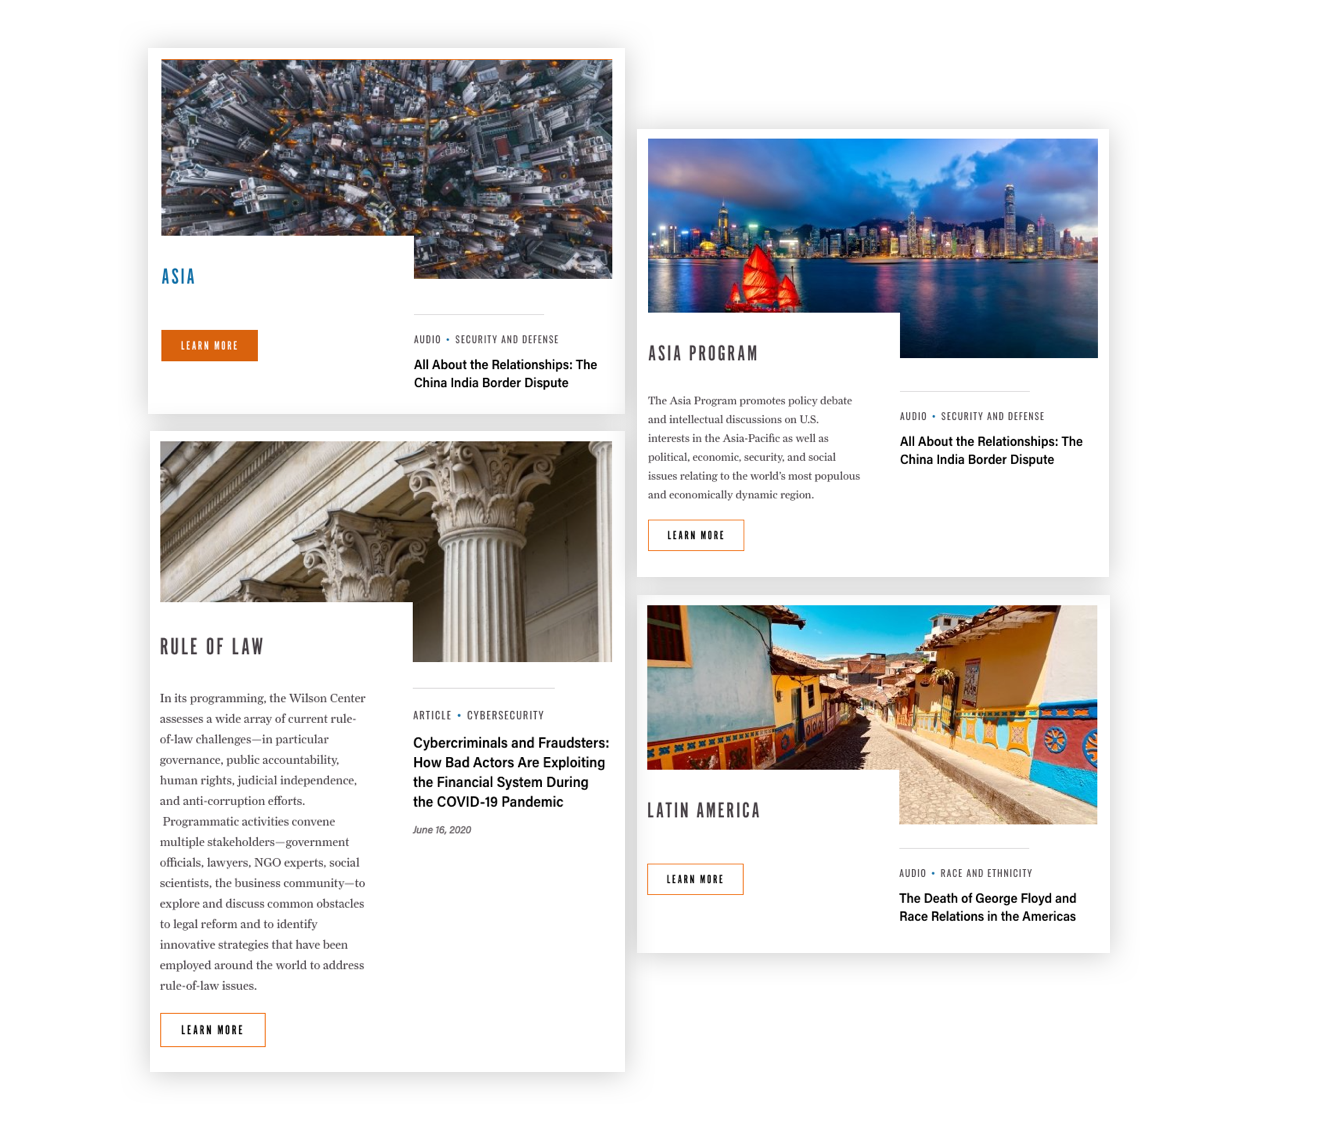 Related content component examples